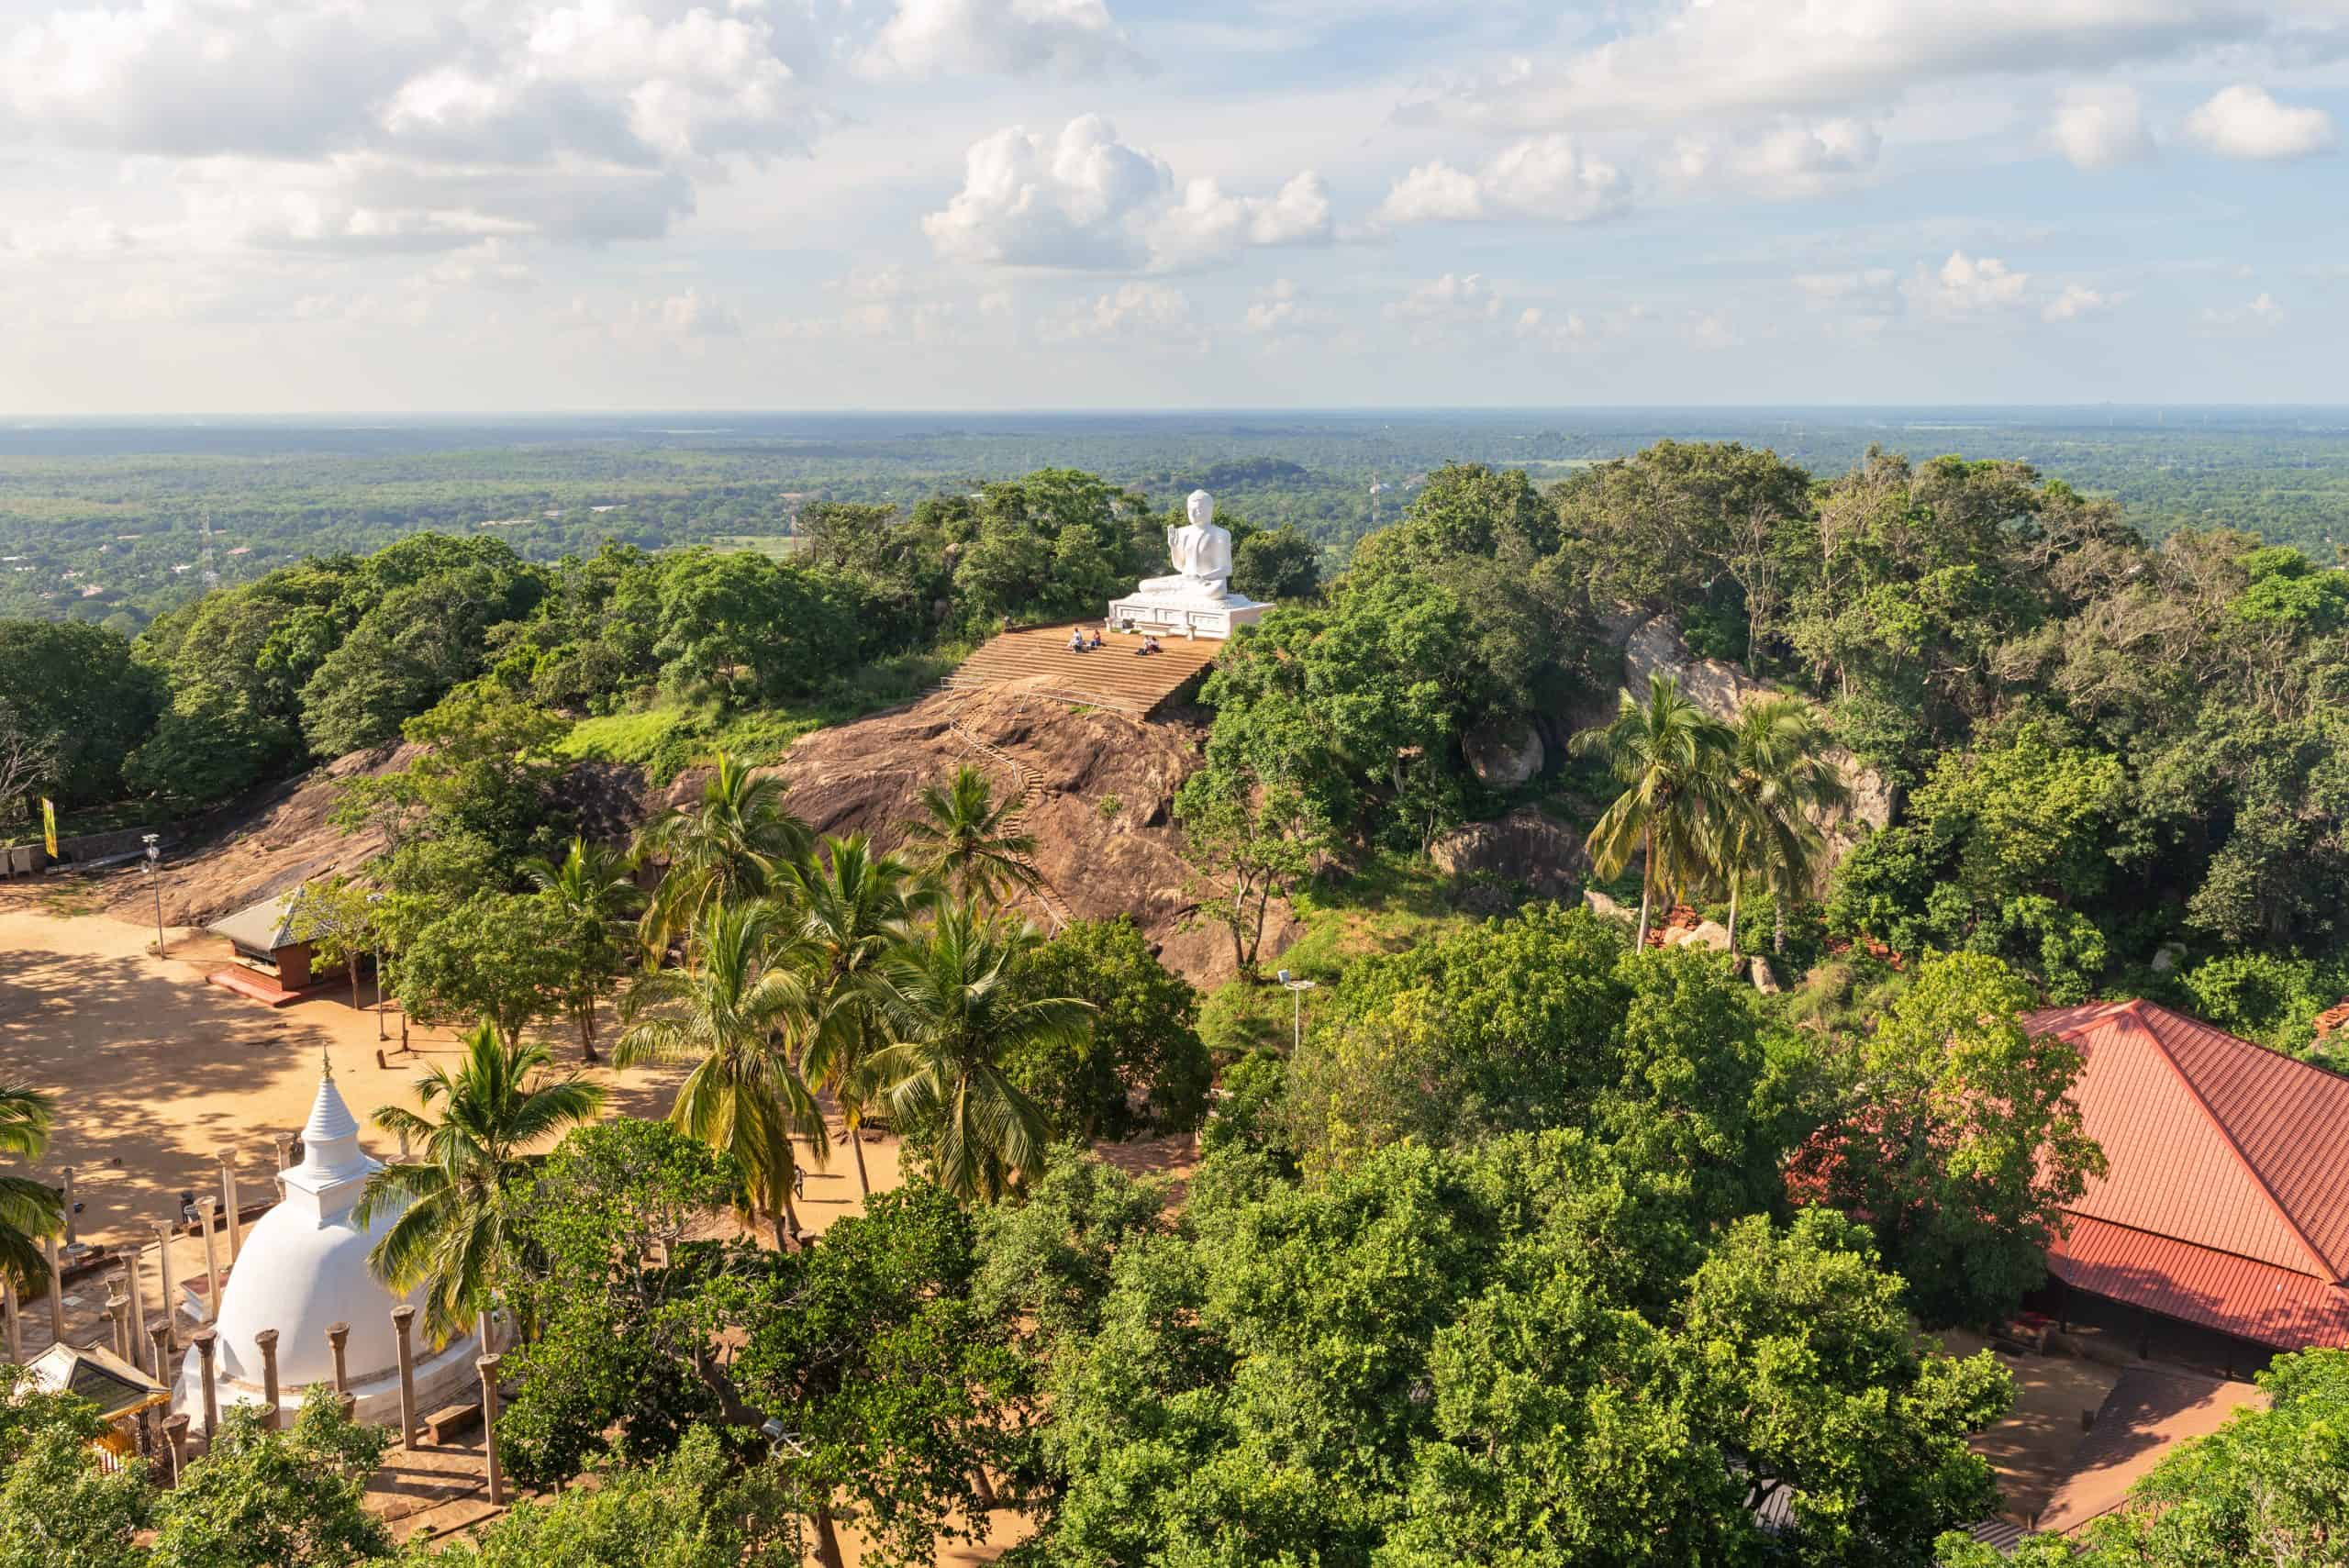 view of surroundings with white statue tourist attraction and trees in Anuradhapura, Sri Lanka